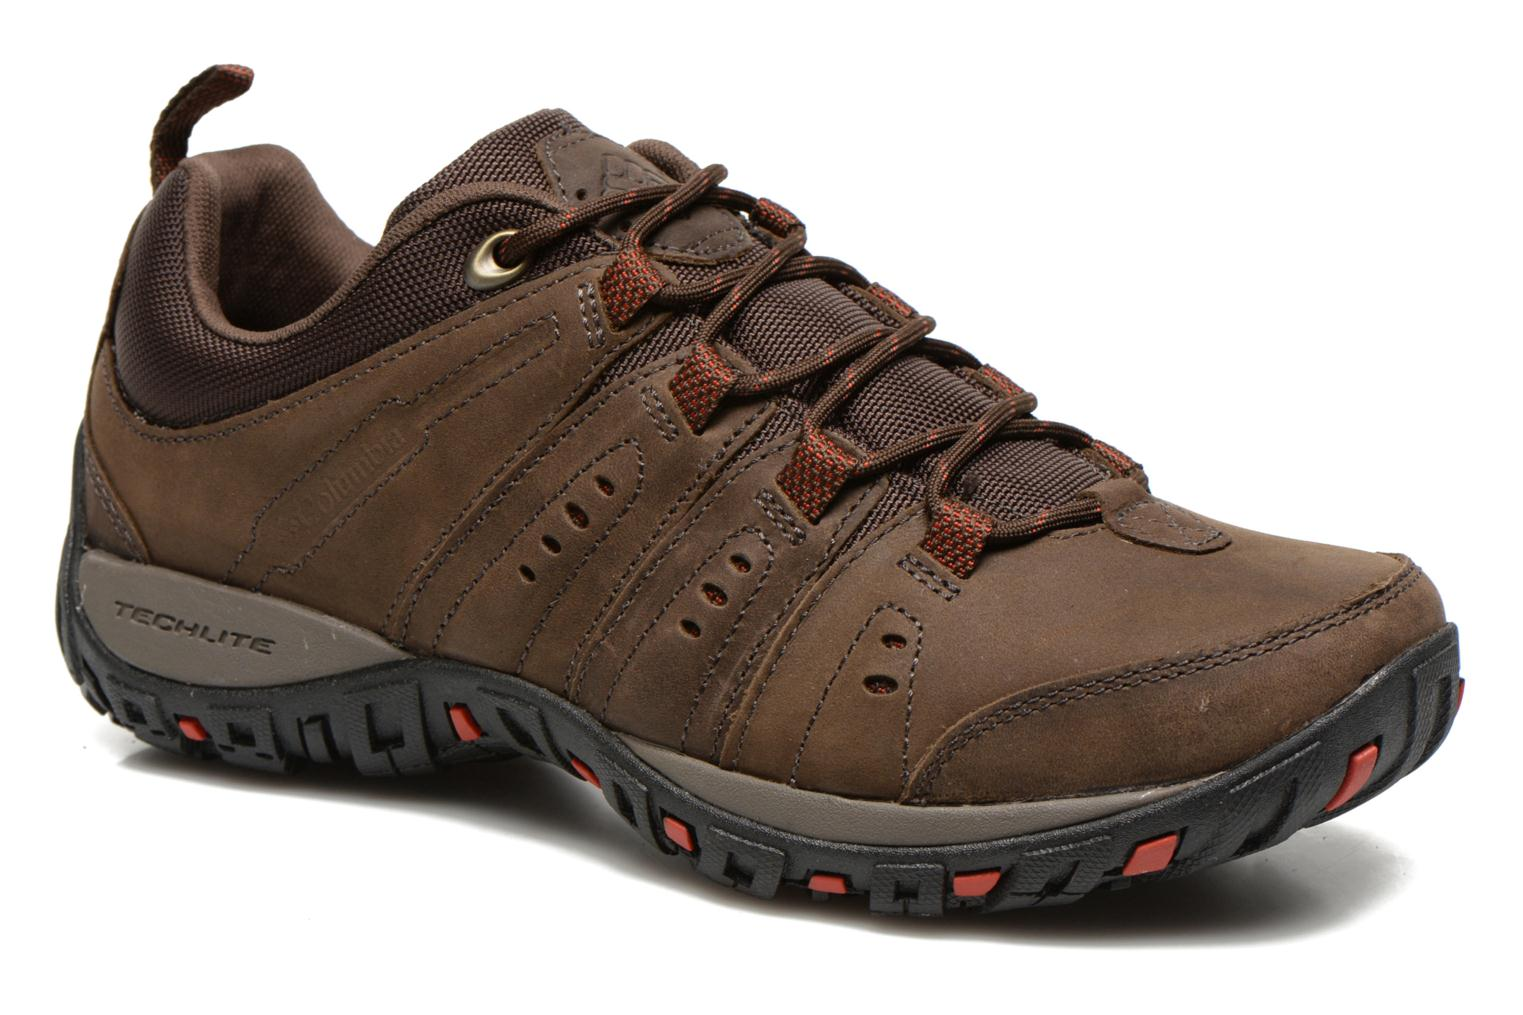 Marques Chaussure homme Columbia homme Woodburn Plus II Cordovan Gypsy